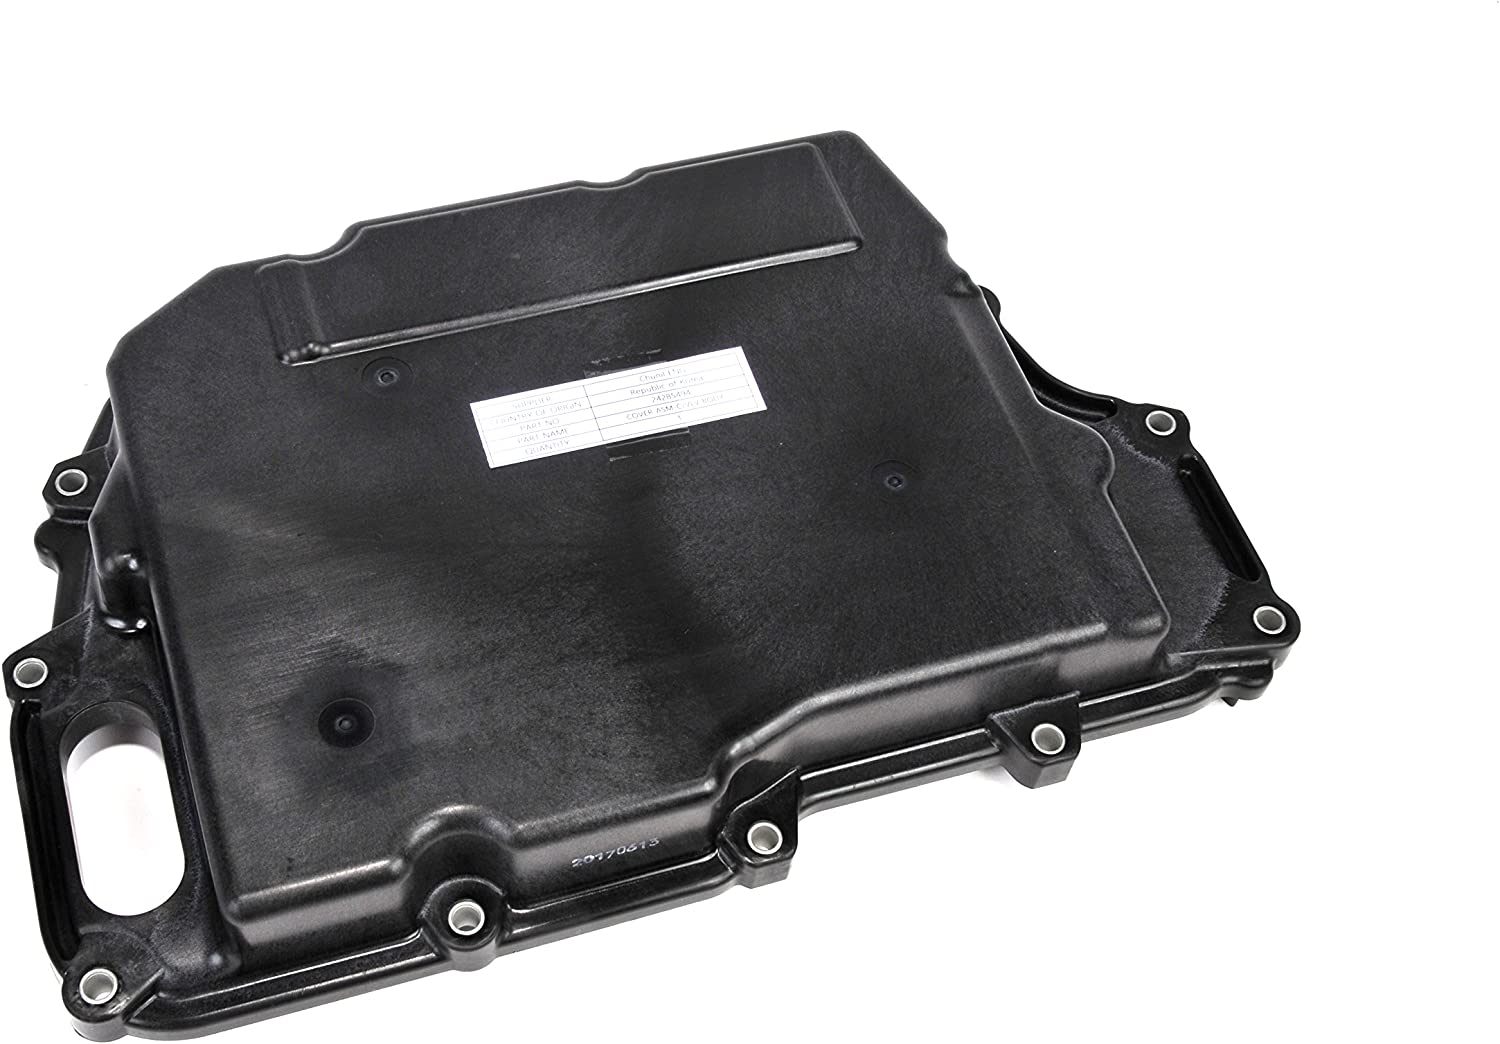 GM Genuine Parts 24285494 Automatic Transmission Control Valve Body Cover